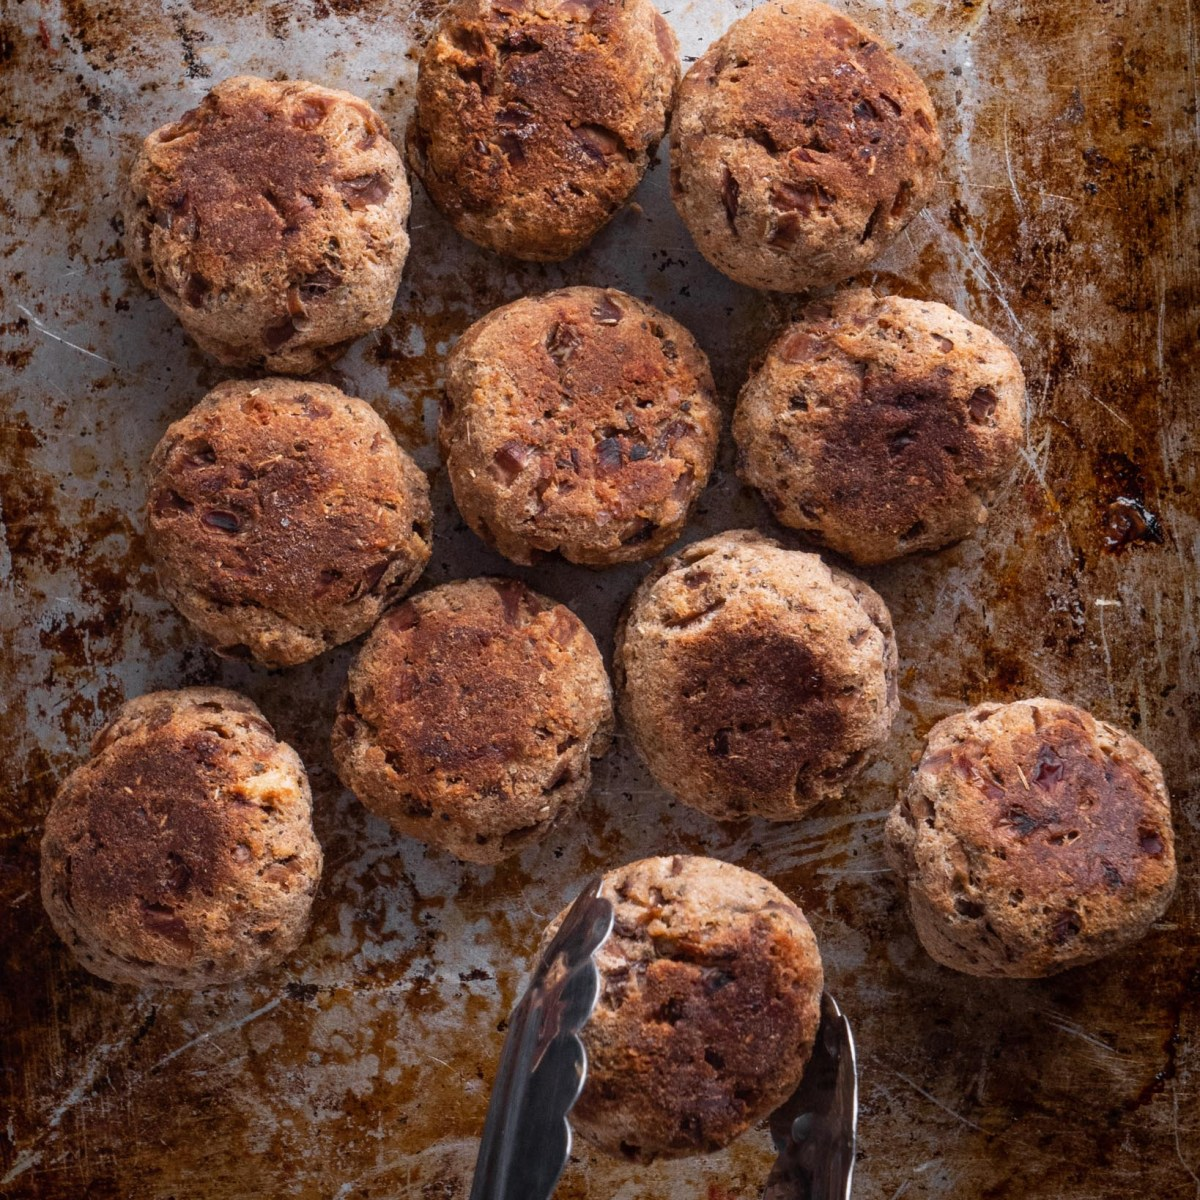 vegan sage and onion stuffing balls on a rustic metal baking tray